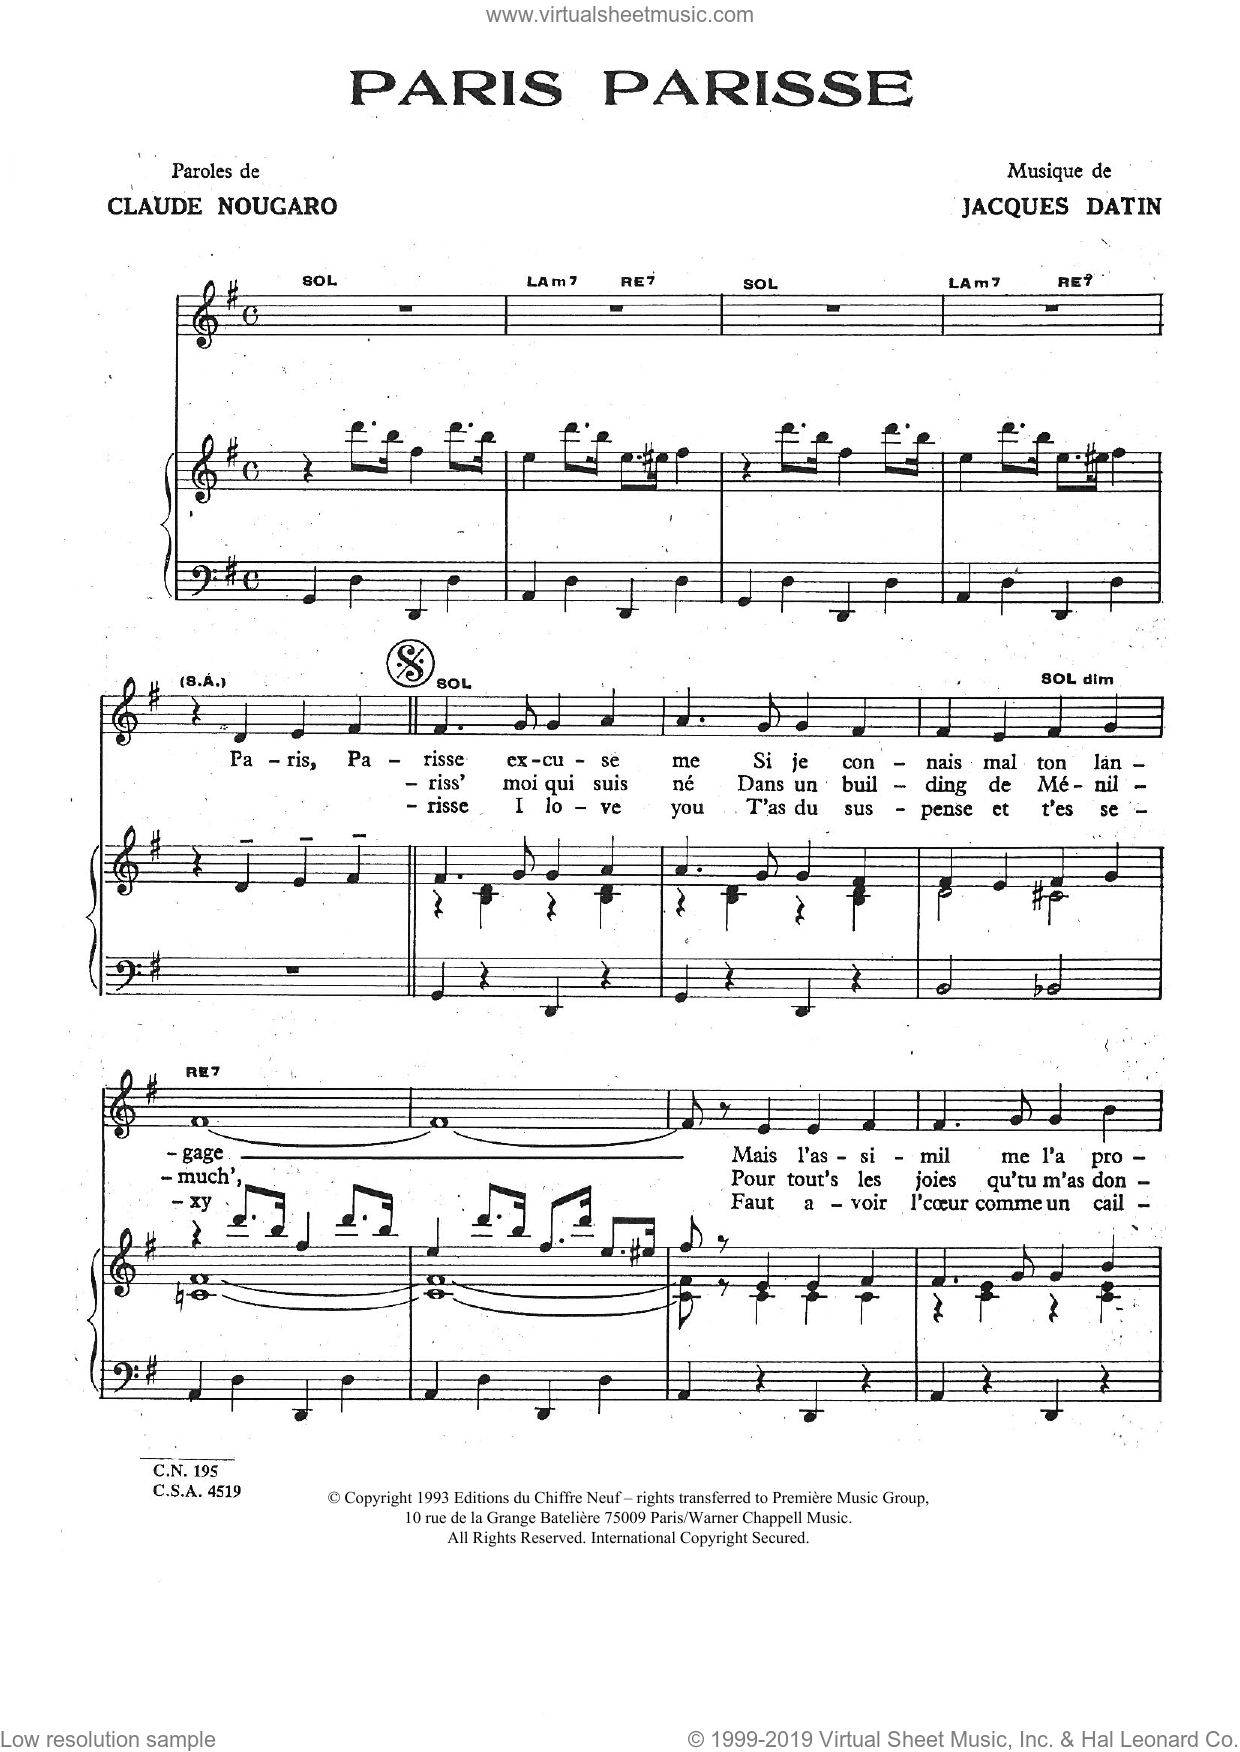 Paris Parisse sheet music for voice and piano by Jacques Datin